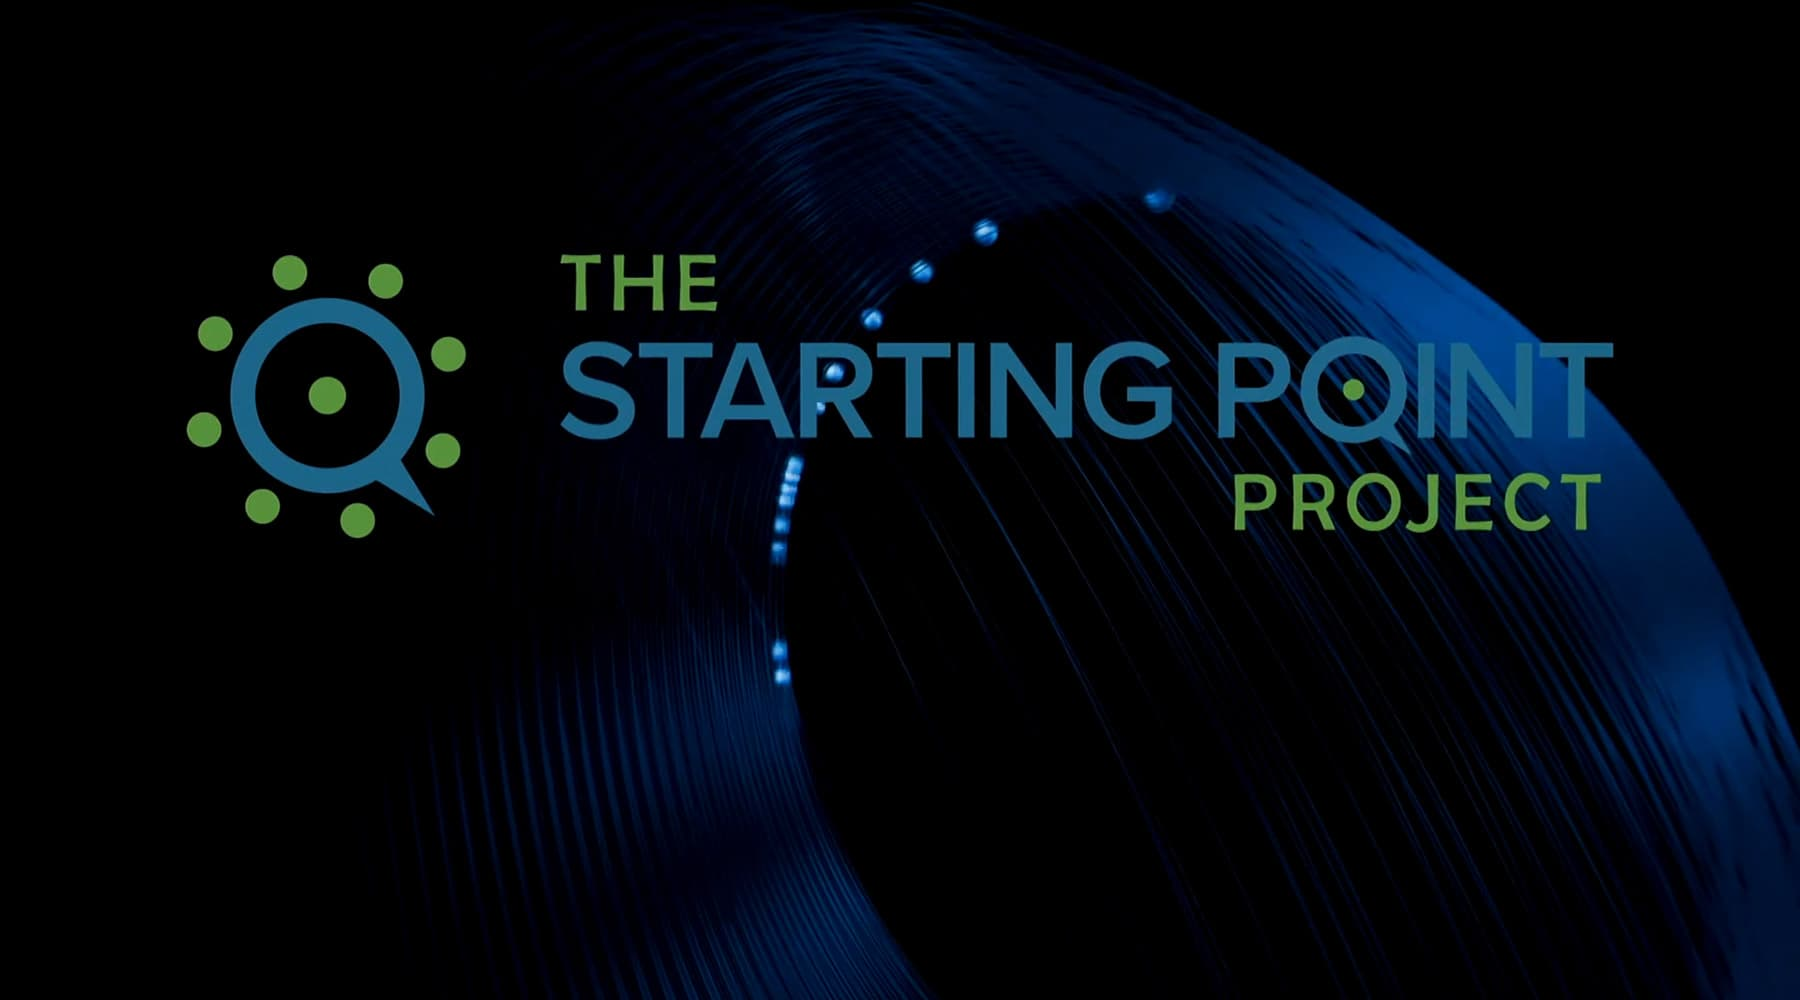 The Starting Point Project logo on black background